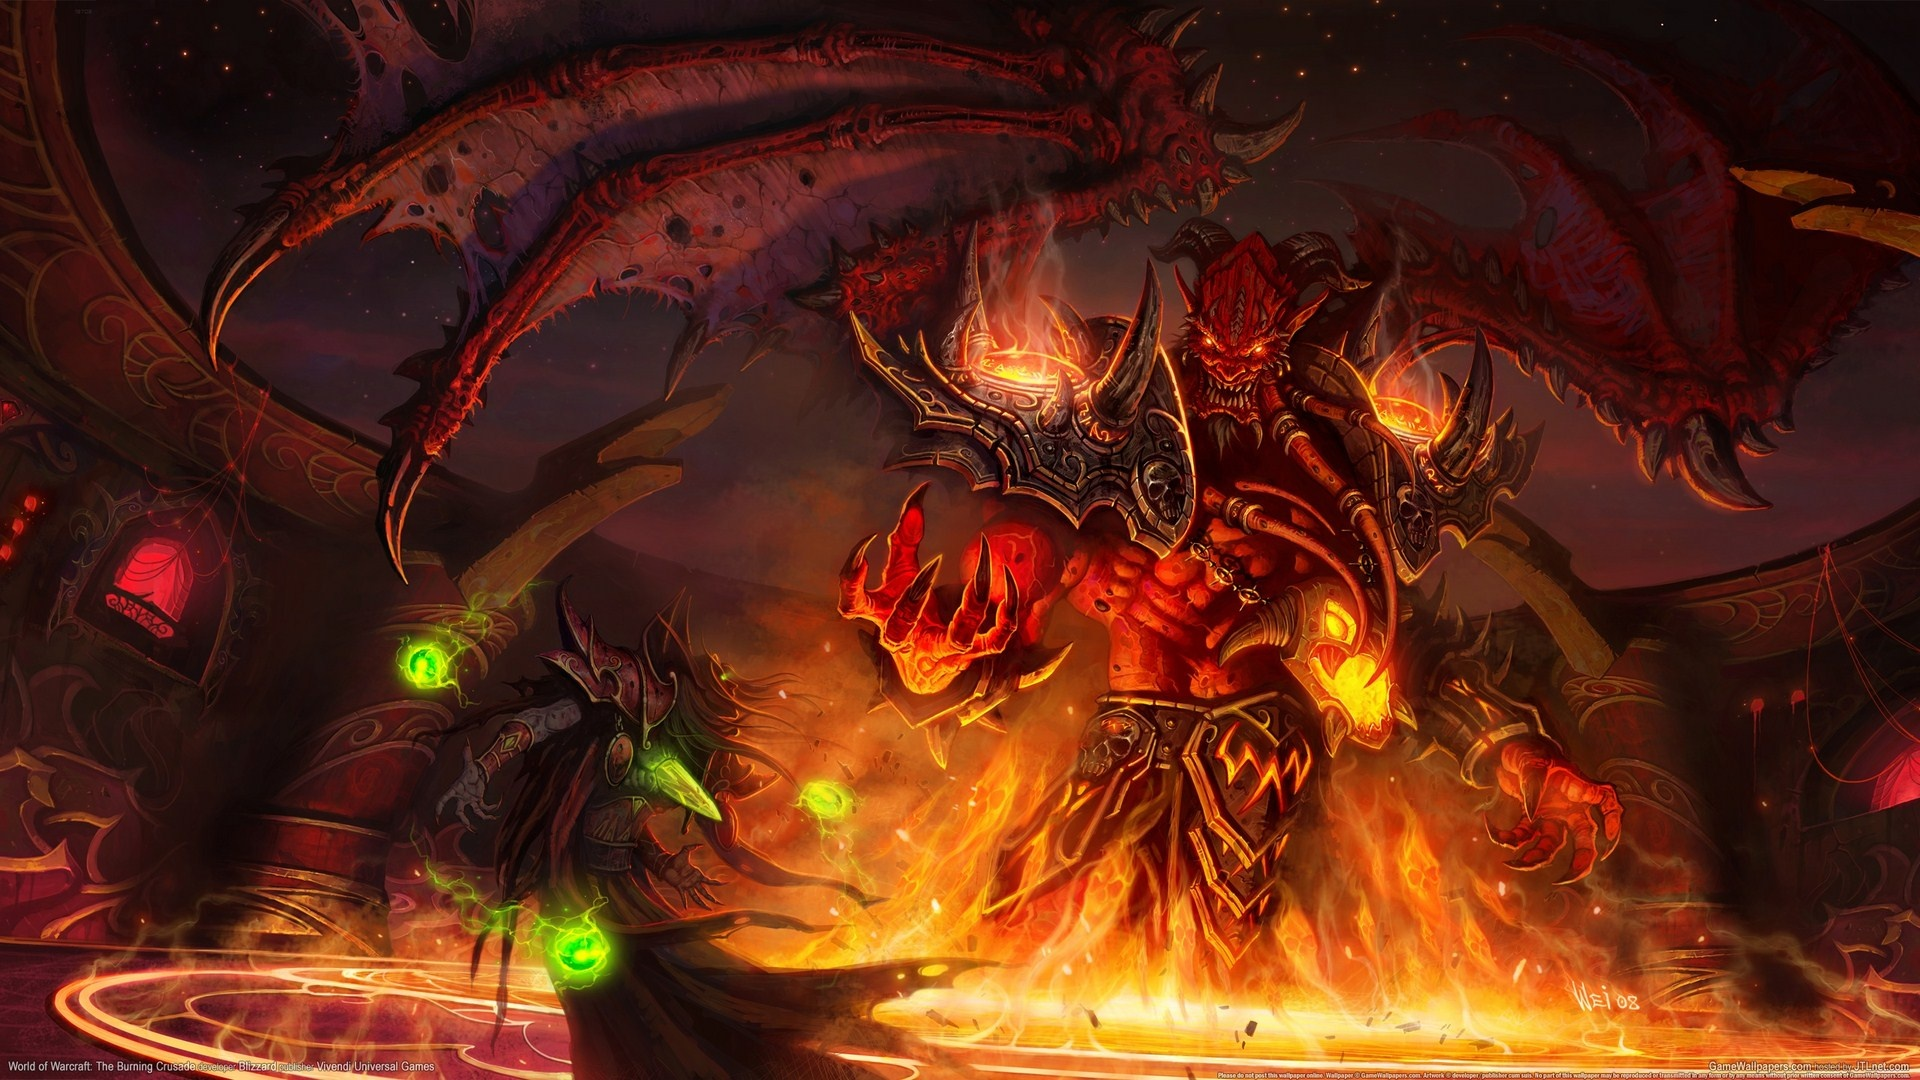 Wallpaper World Of Warcraft HD Gratuit à Télécharger Sur